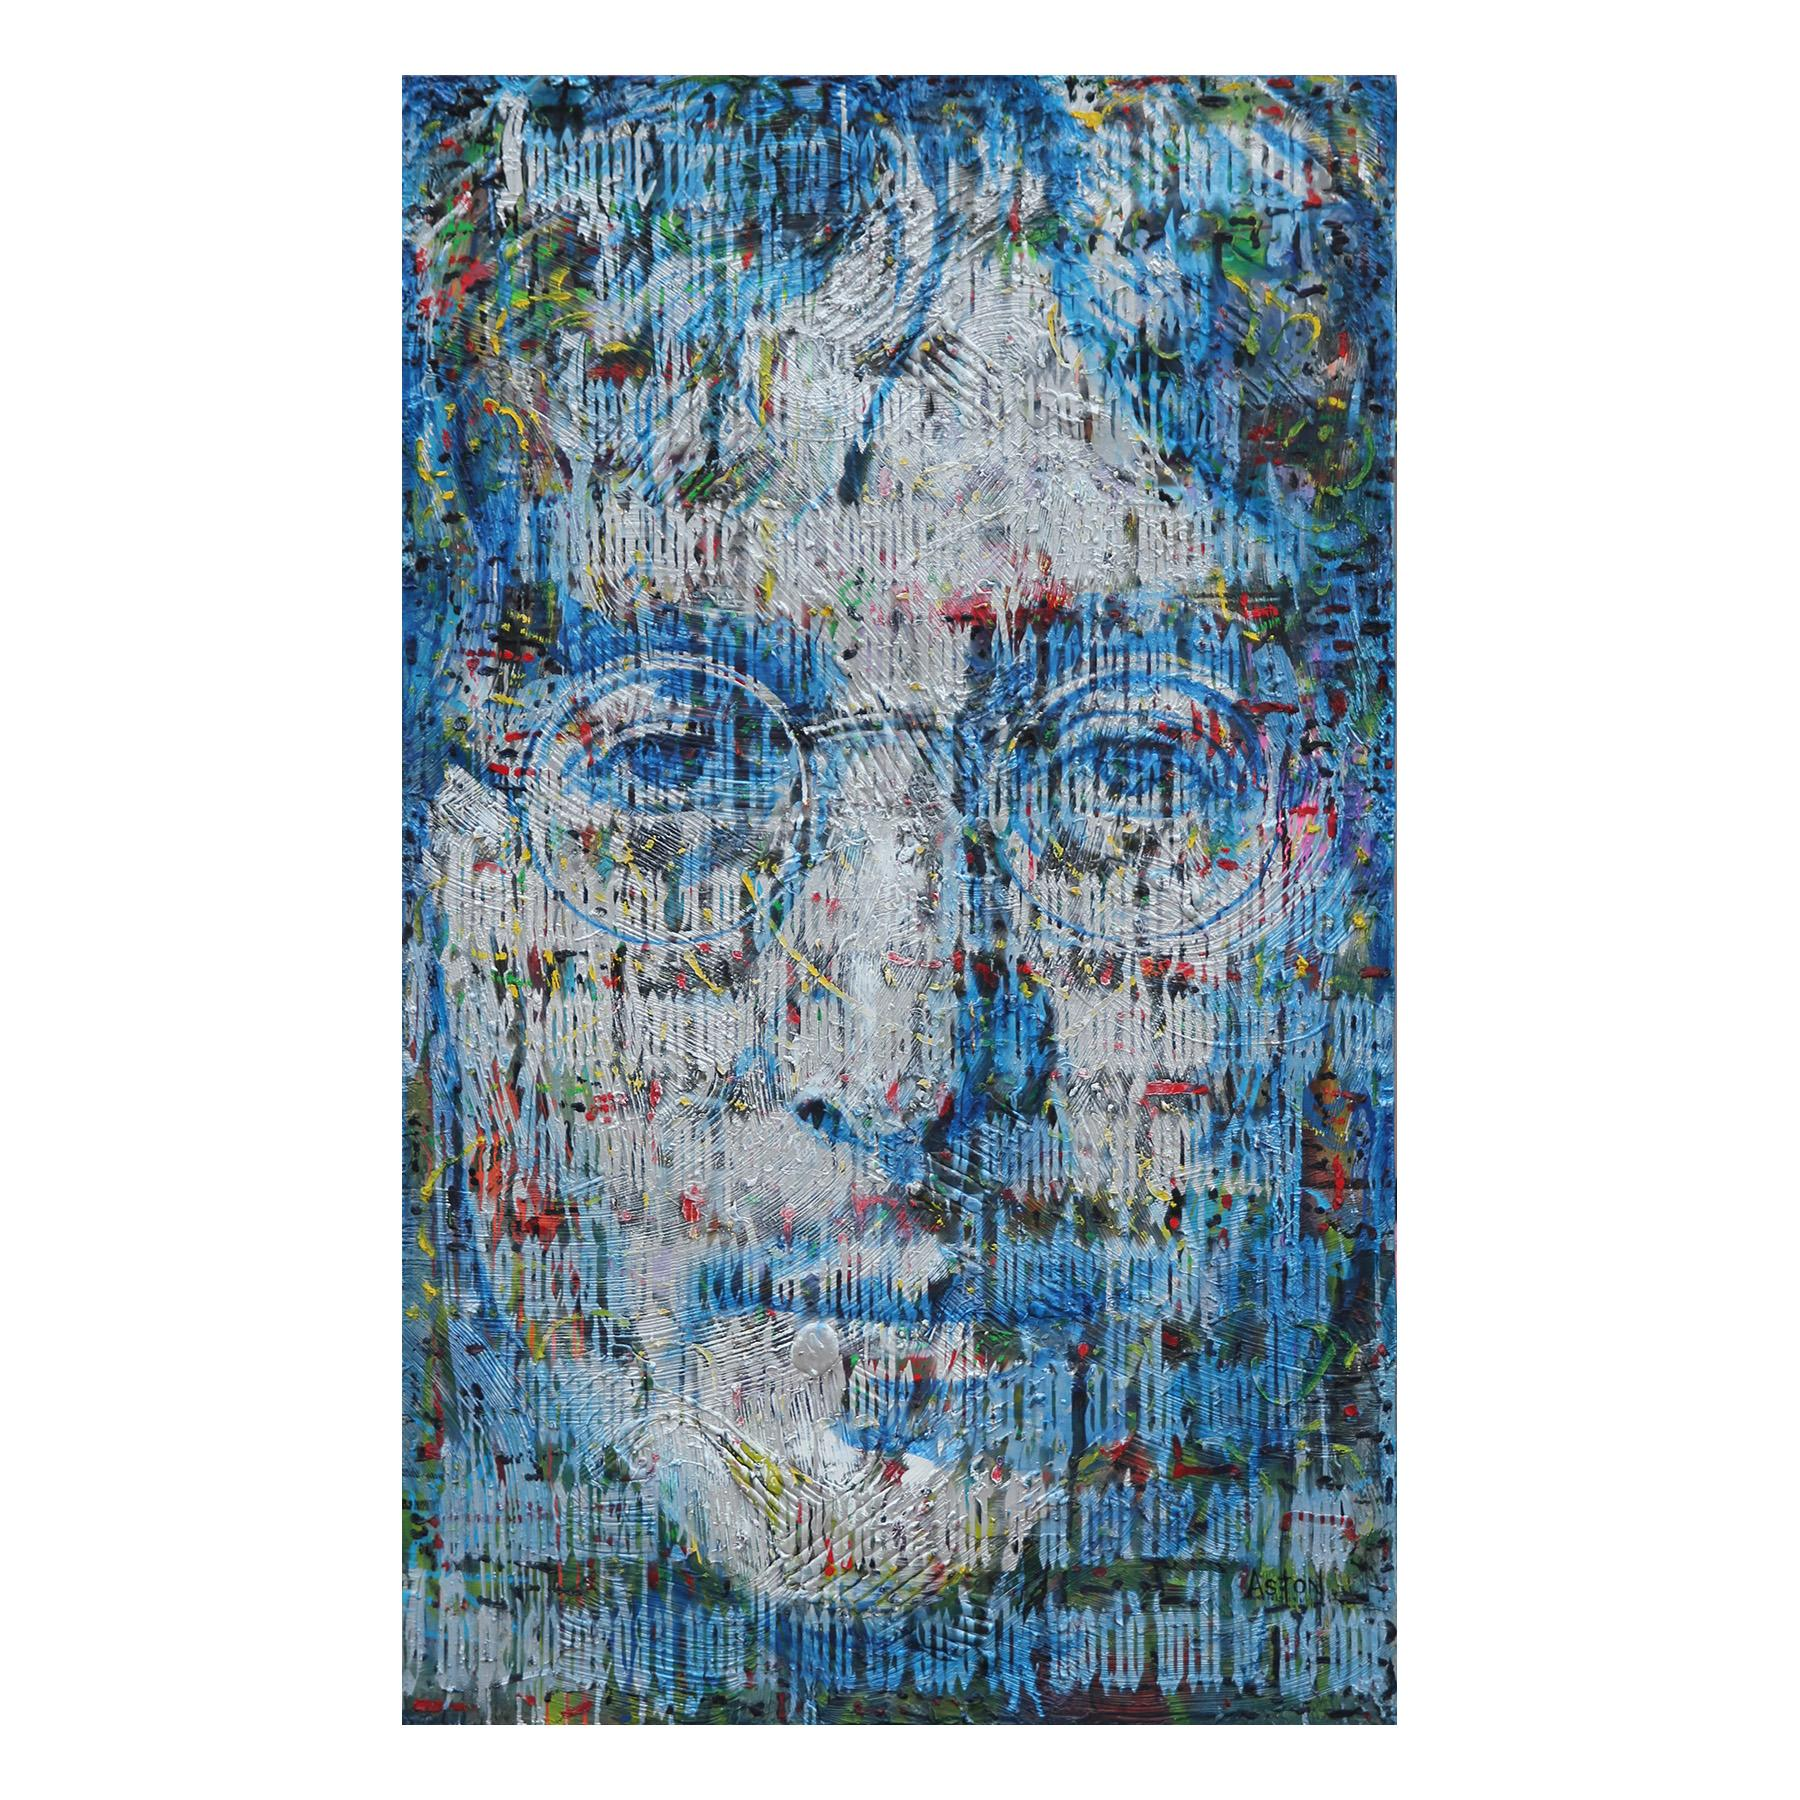 """Large Abstract Blue and Silver Portrait of John Lennon and """"Imagine"""" Song Lyrics"""